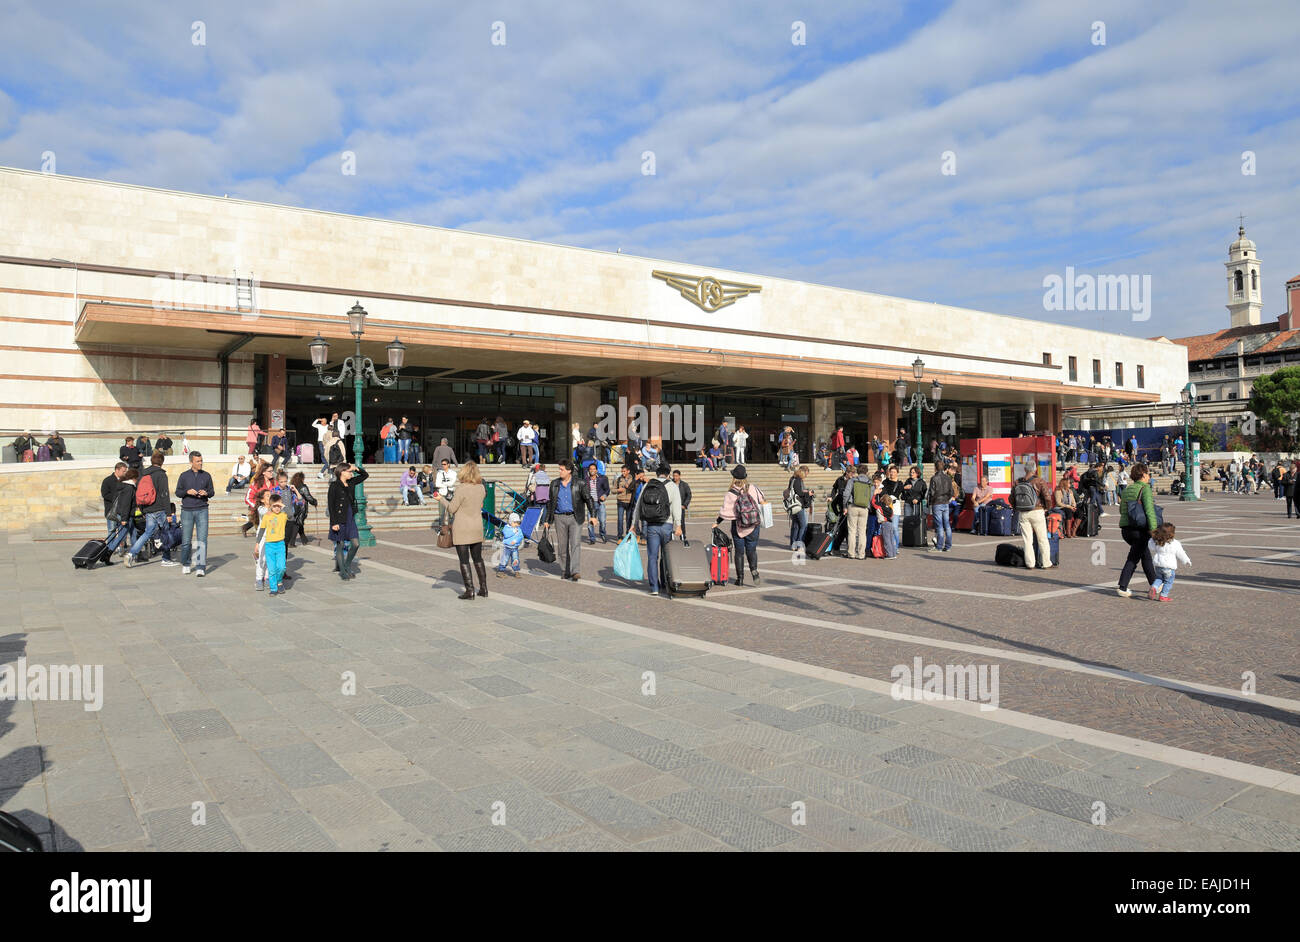 Travellers outside Santa Lucia Railway Station, Venice, Italy. - Stock Image